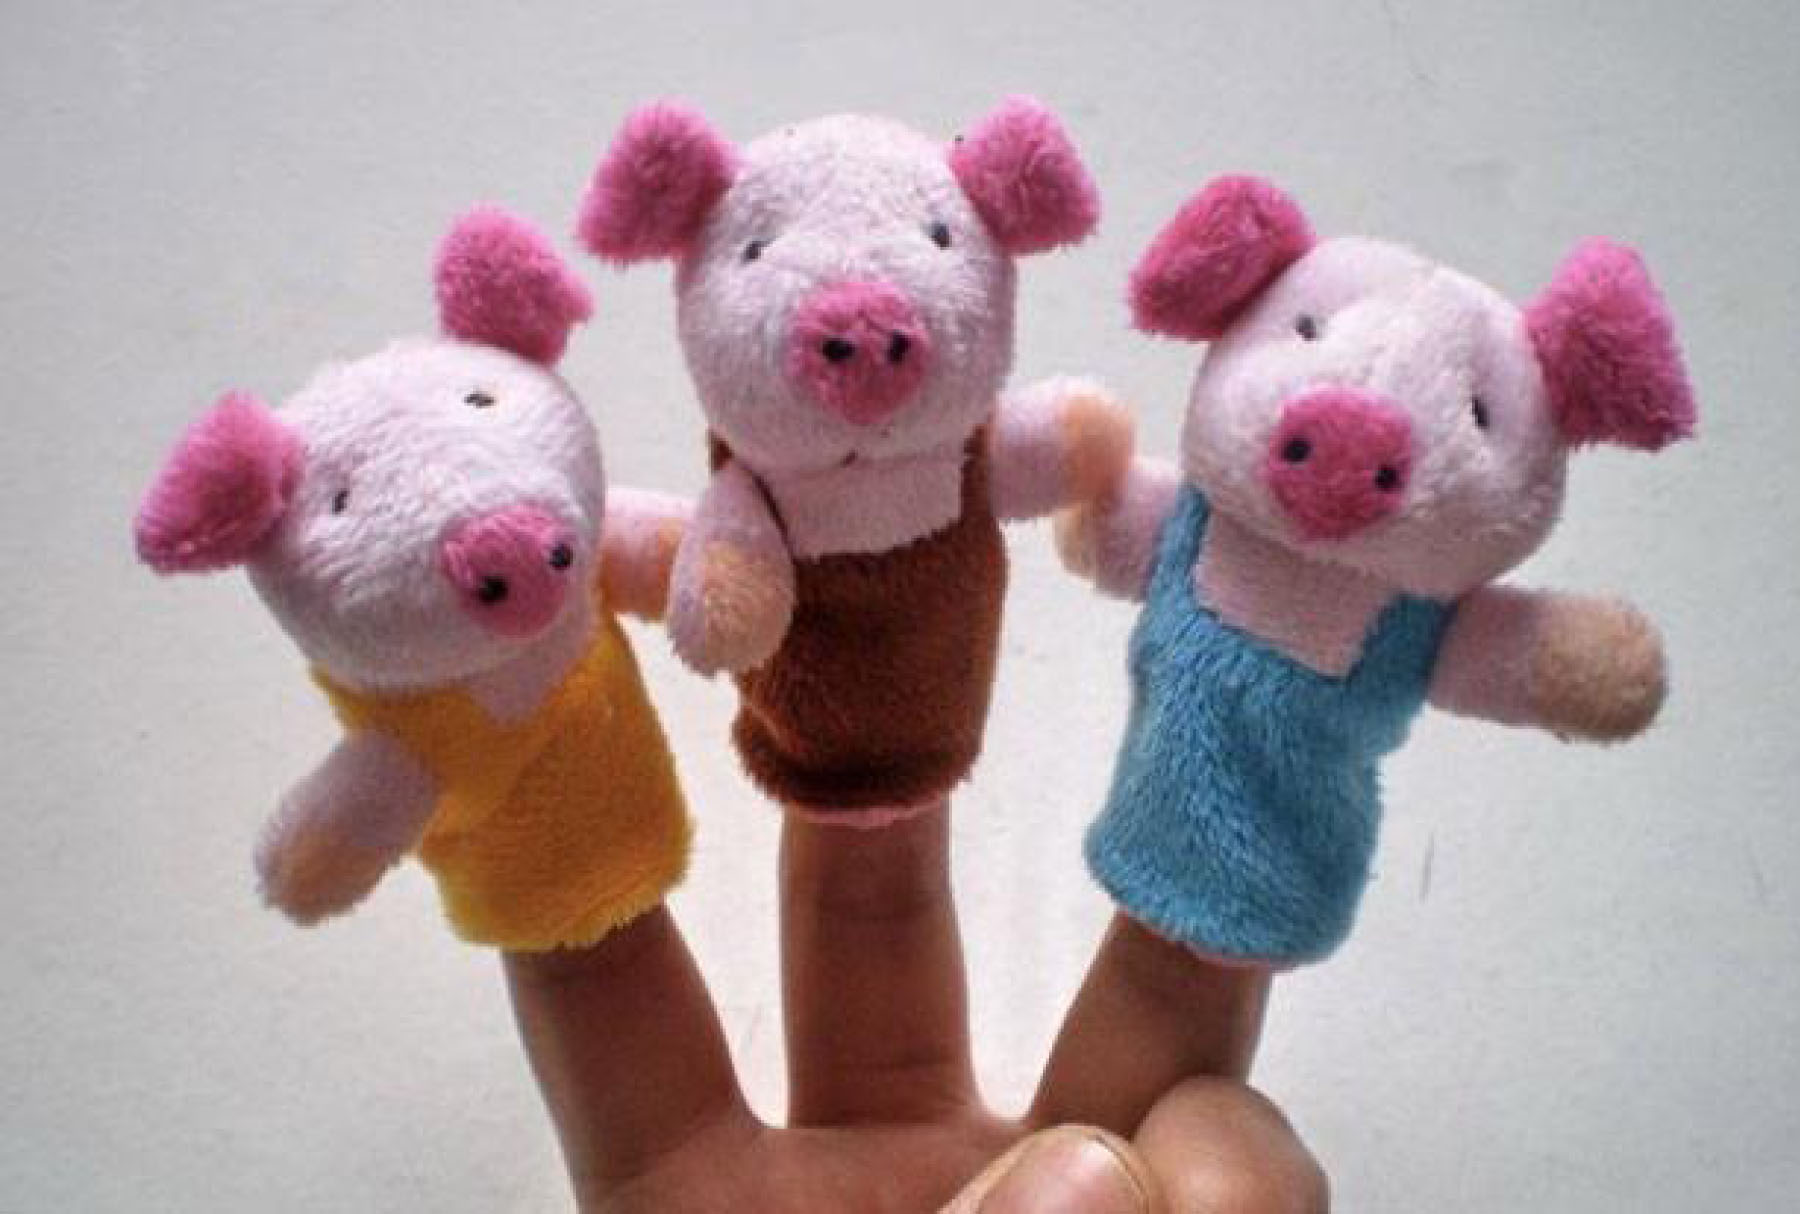 Créditos: http://squoodles.co.nz/products/3-little-pigs-finger-puppets-set-of-8/